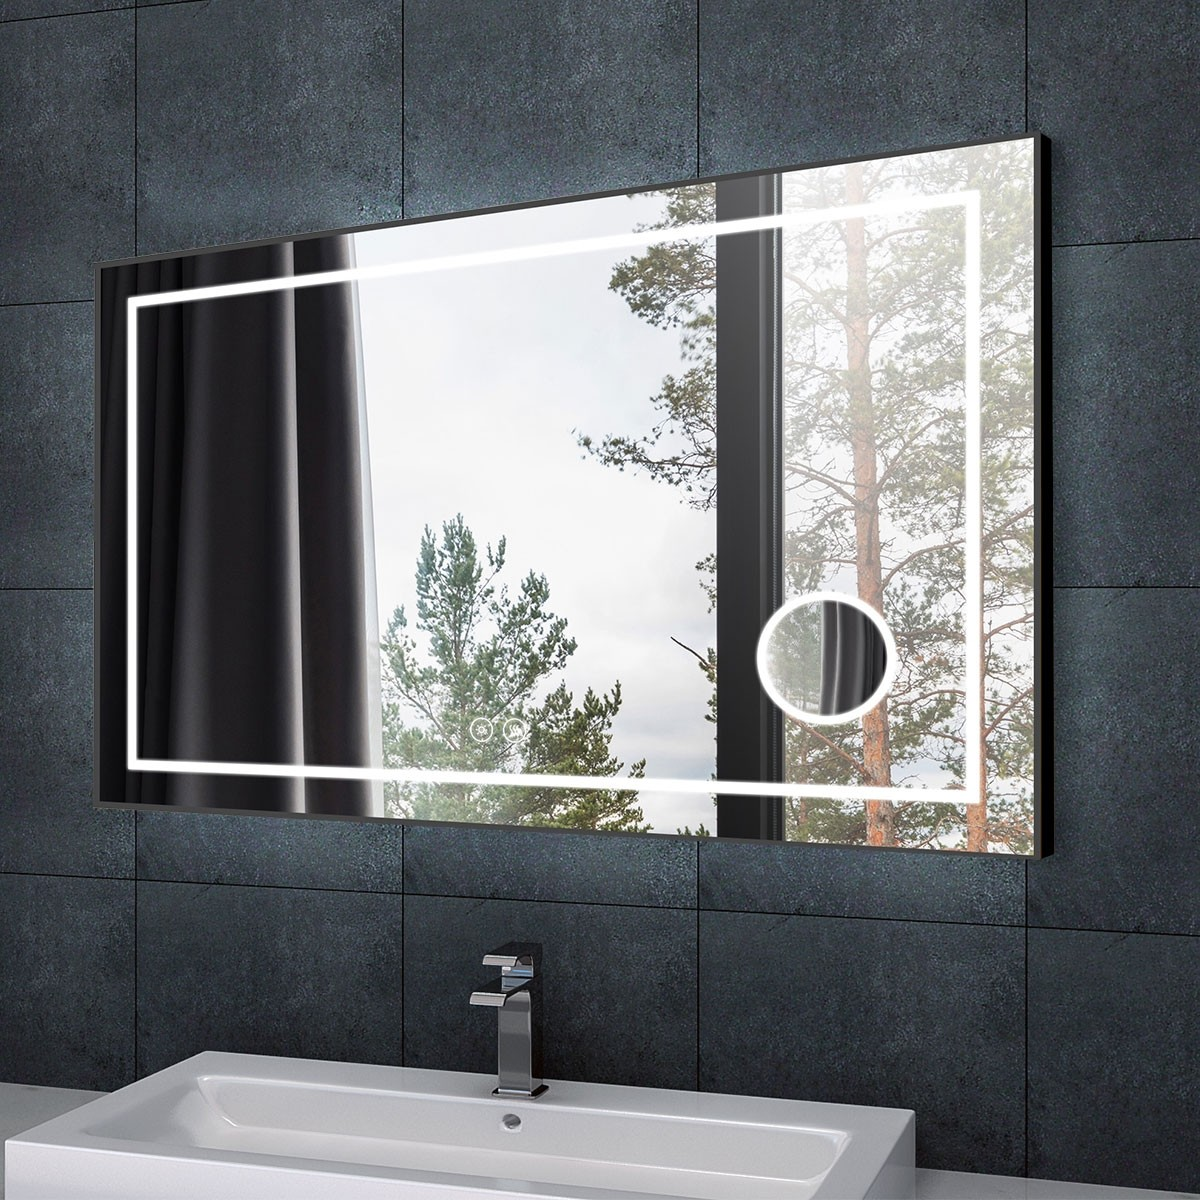 DECORAPORT 55 x 36 Inch LED Bathroom Mirror/Dress Mirror with Touch Button, Magnifier, Anti Fog, Dimmable, Bluetooth Speakers, Horizontal Mount (D623-5536AC)